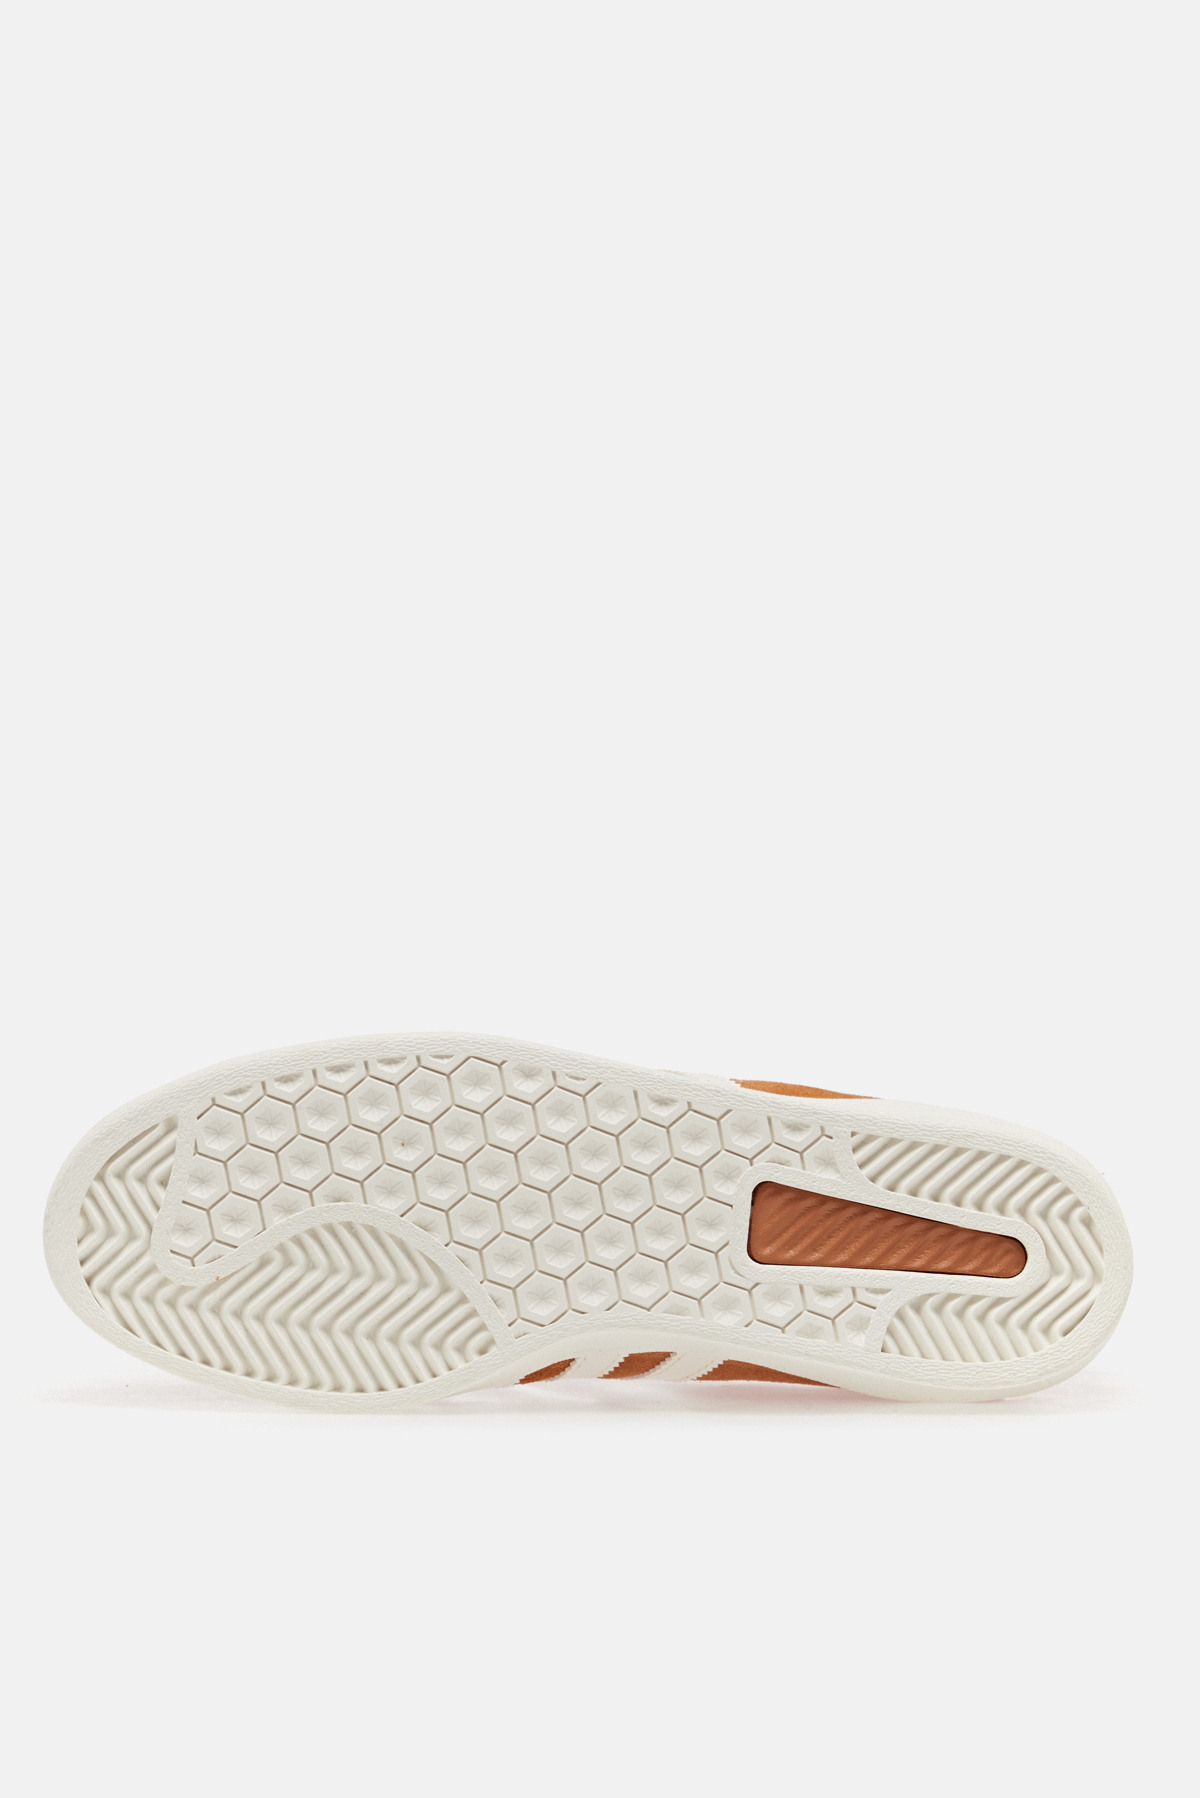 adidas campus taille 28